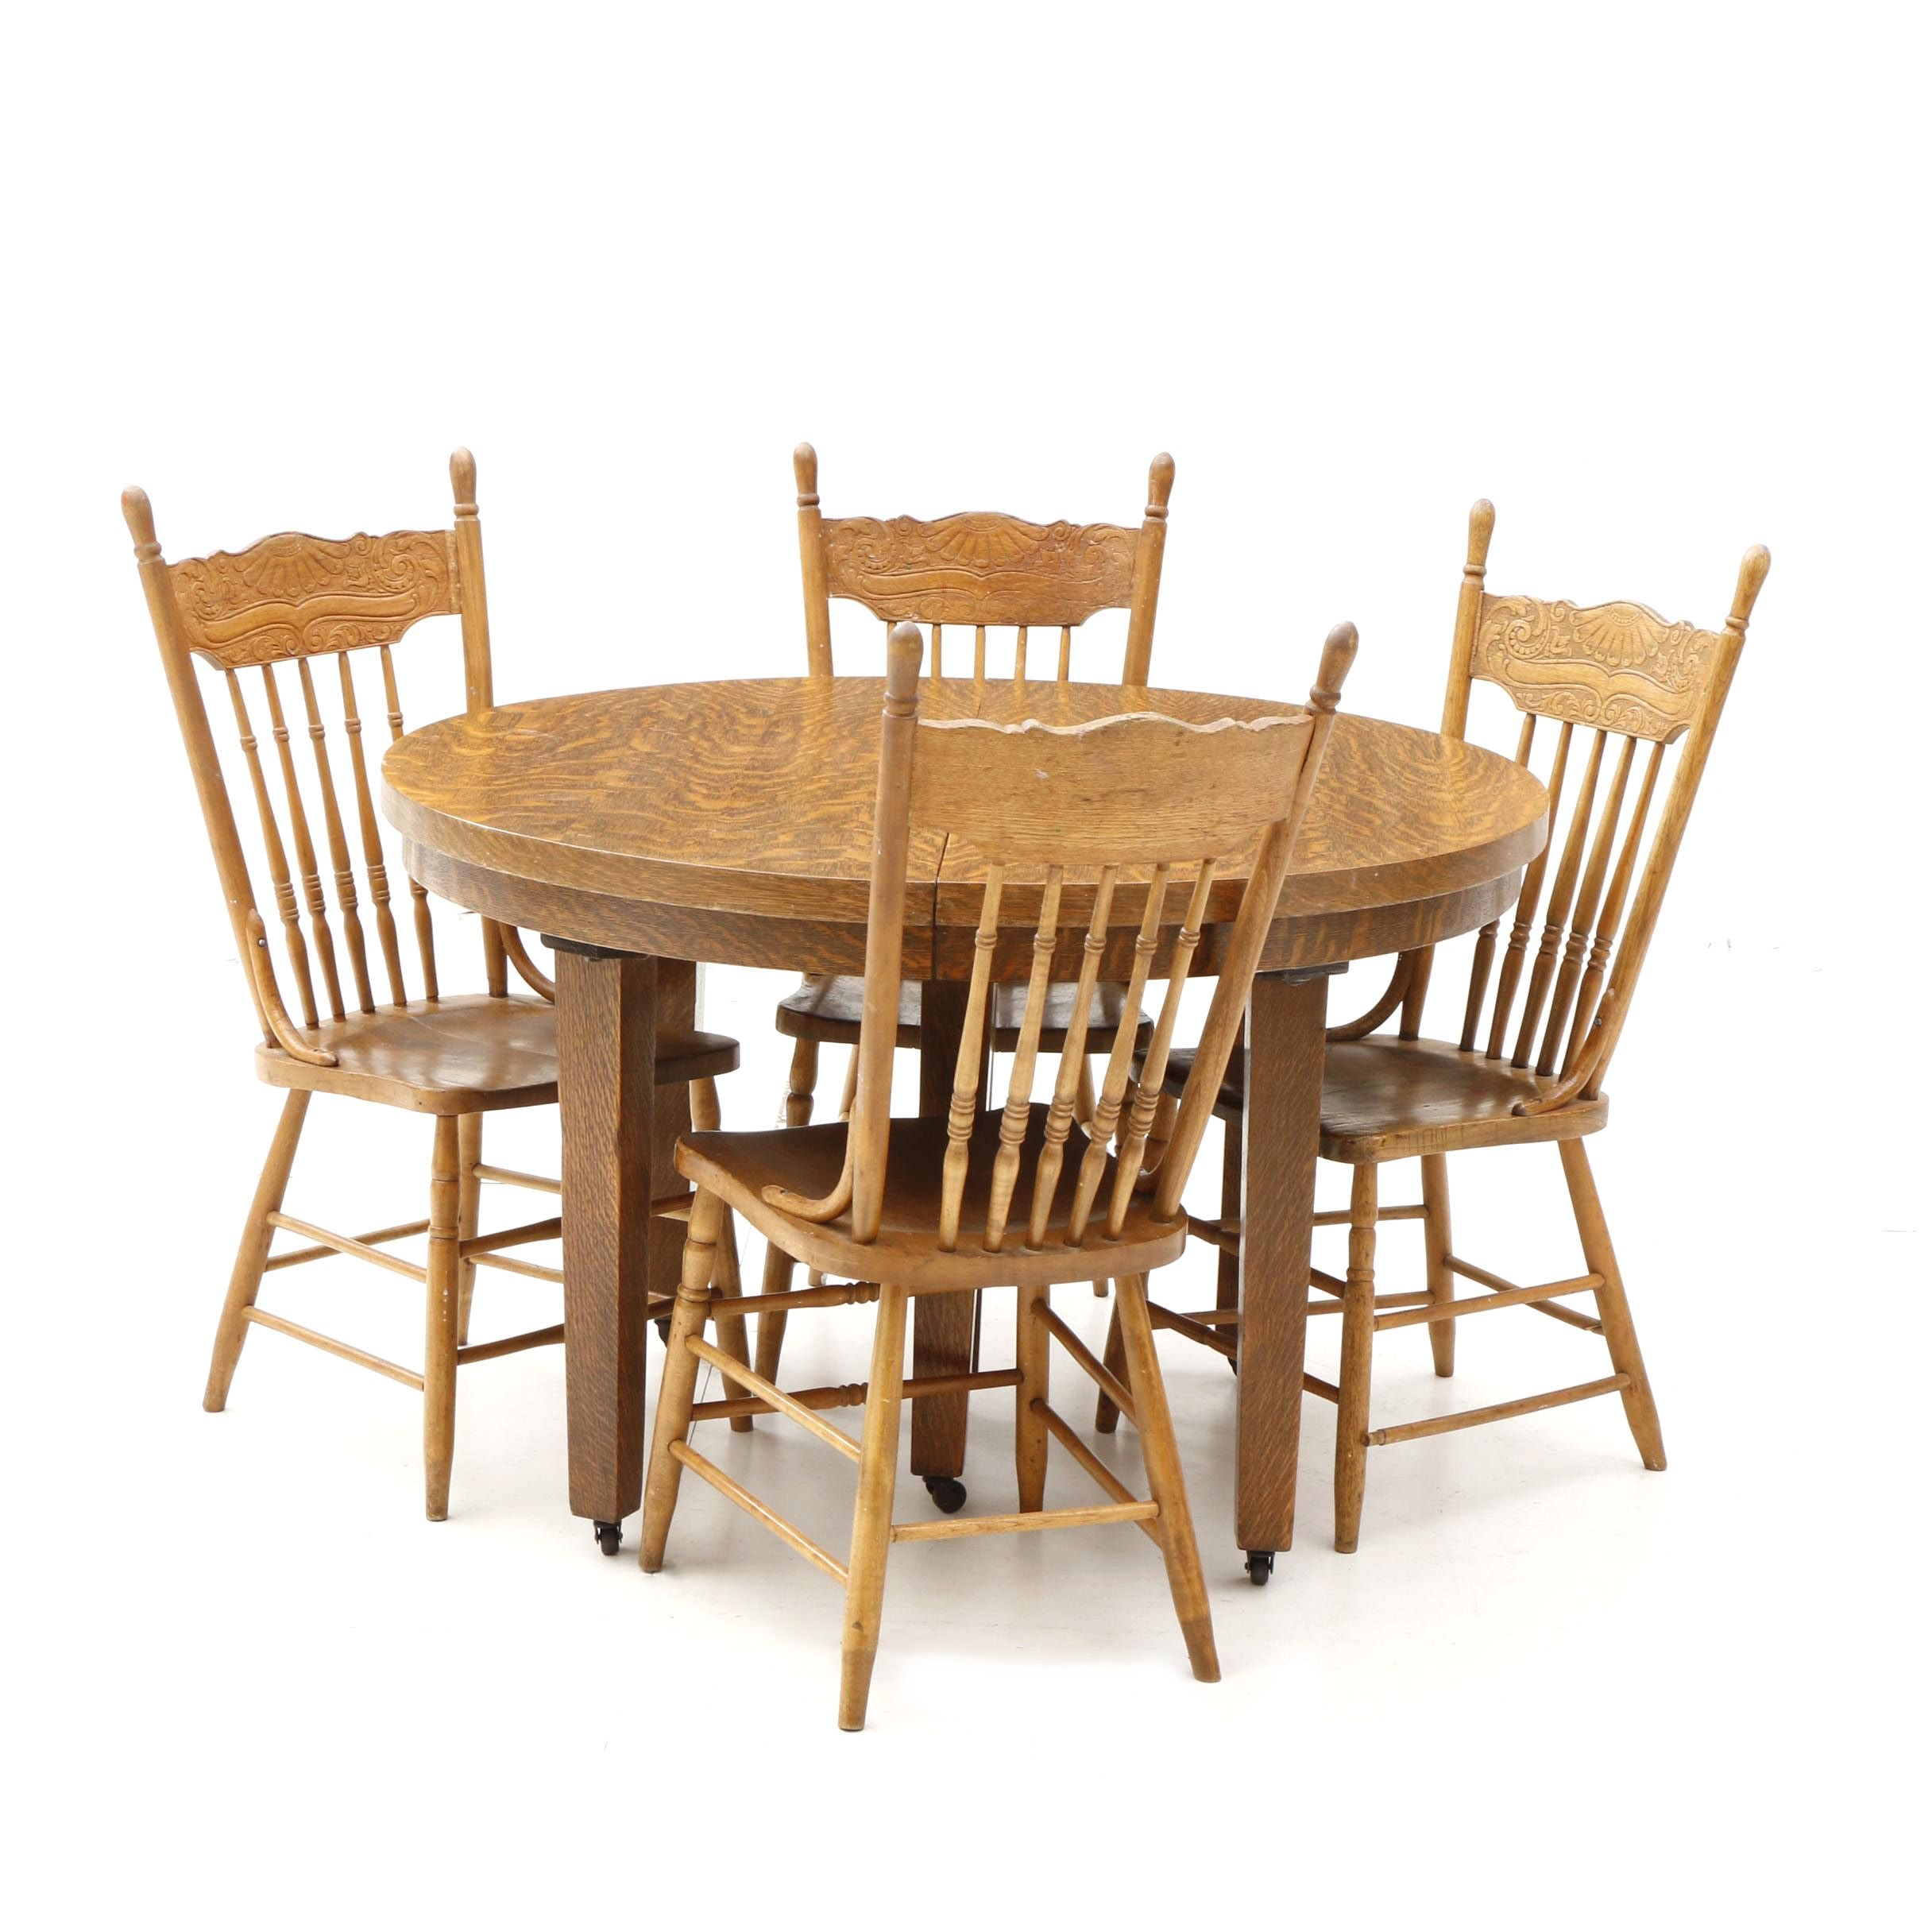 Early 20th Century American Oak Dining Table and Chairs